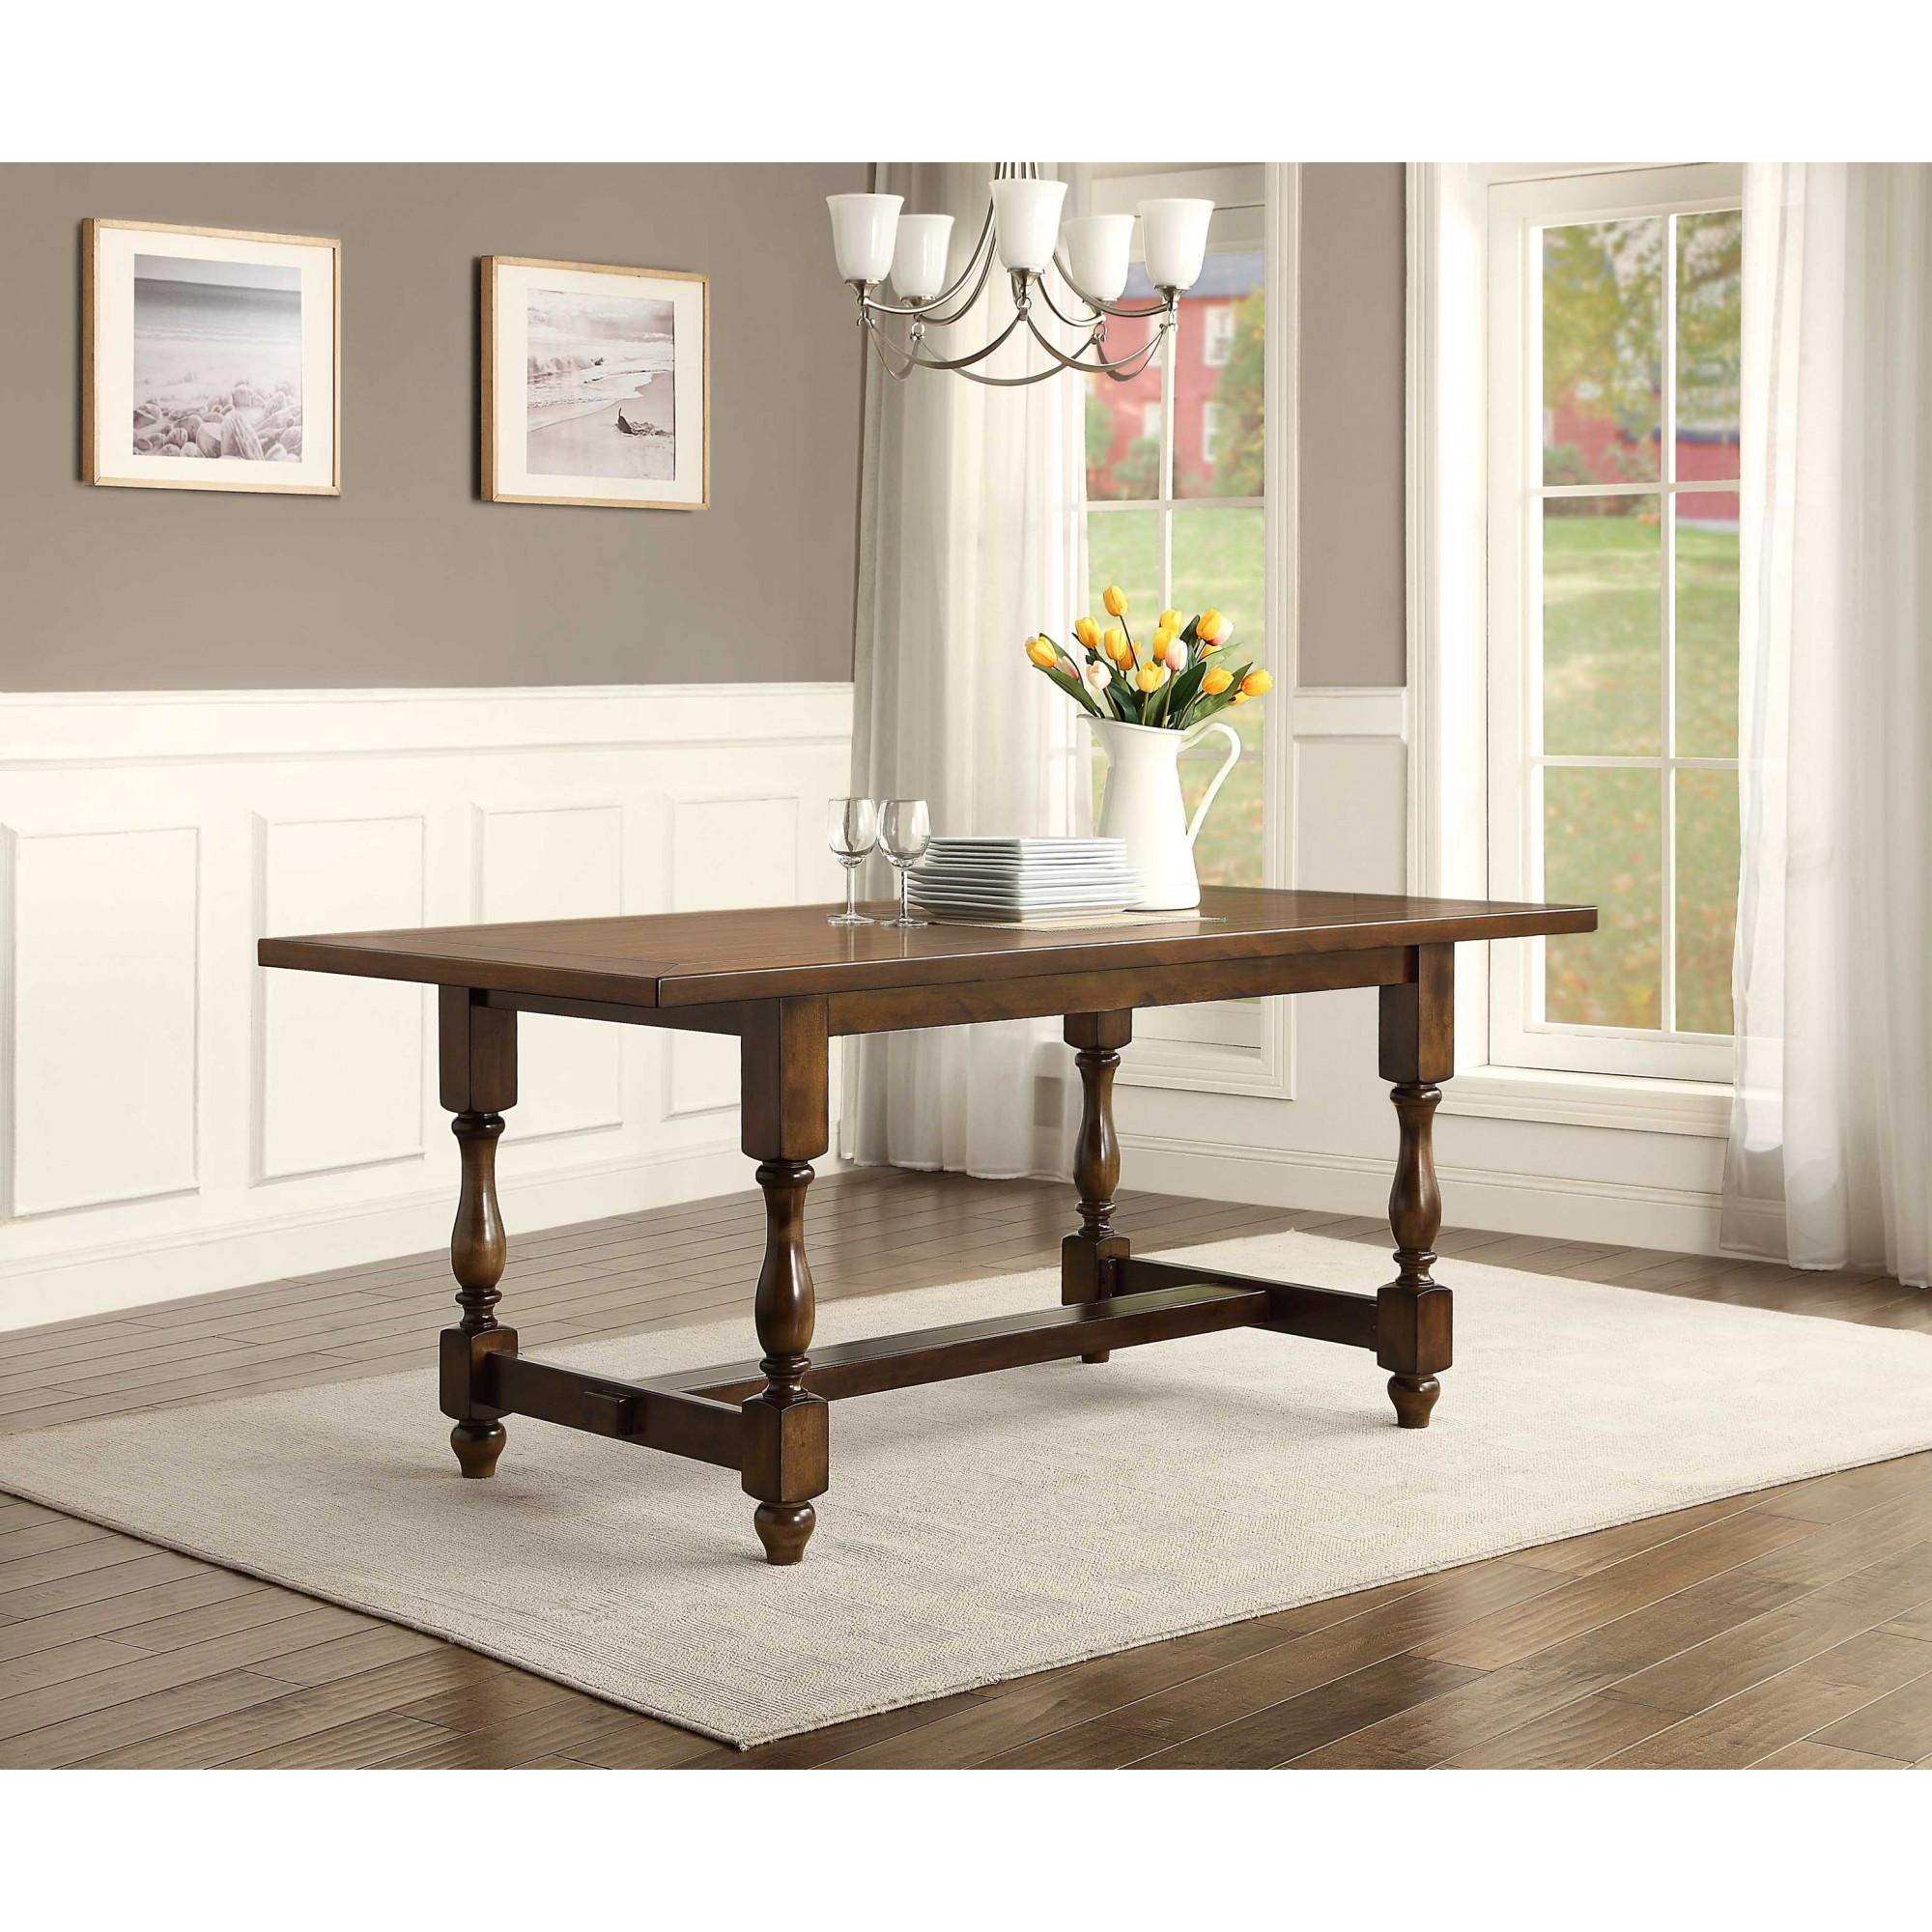 Better Homes and Gardens Providence Dining Table, Brown by